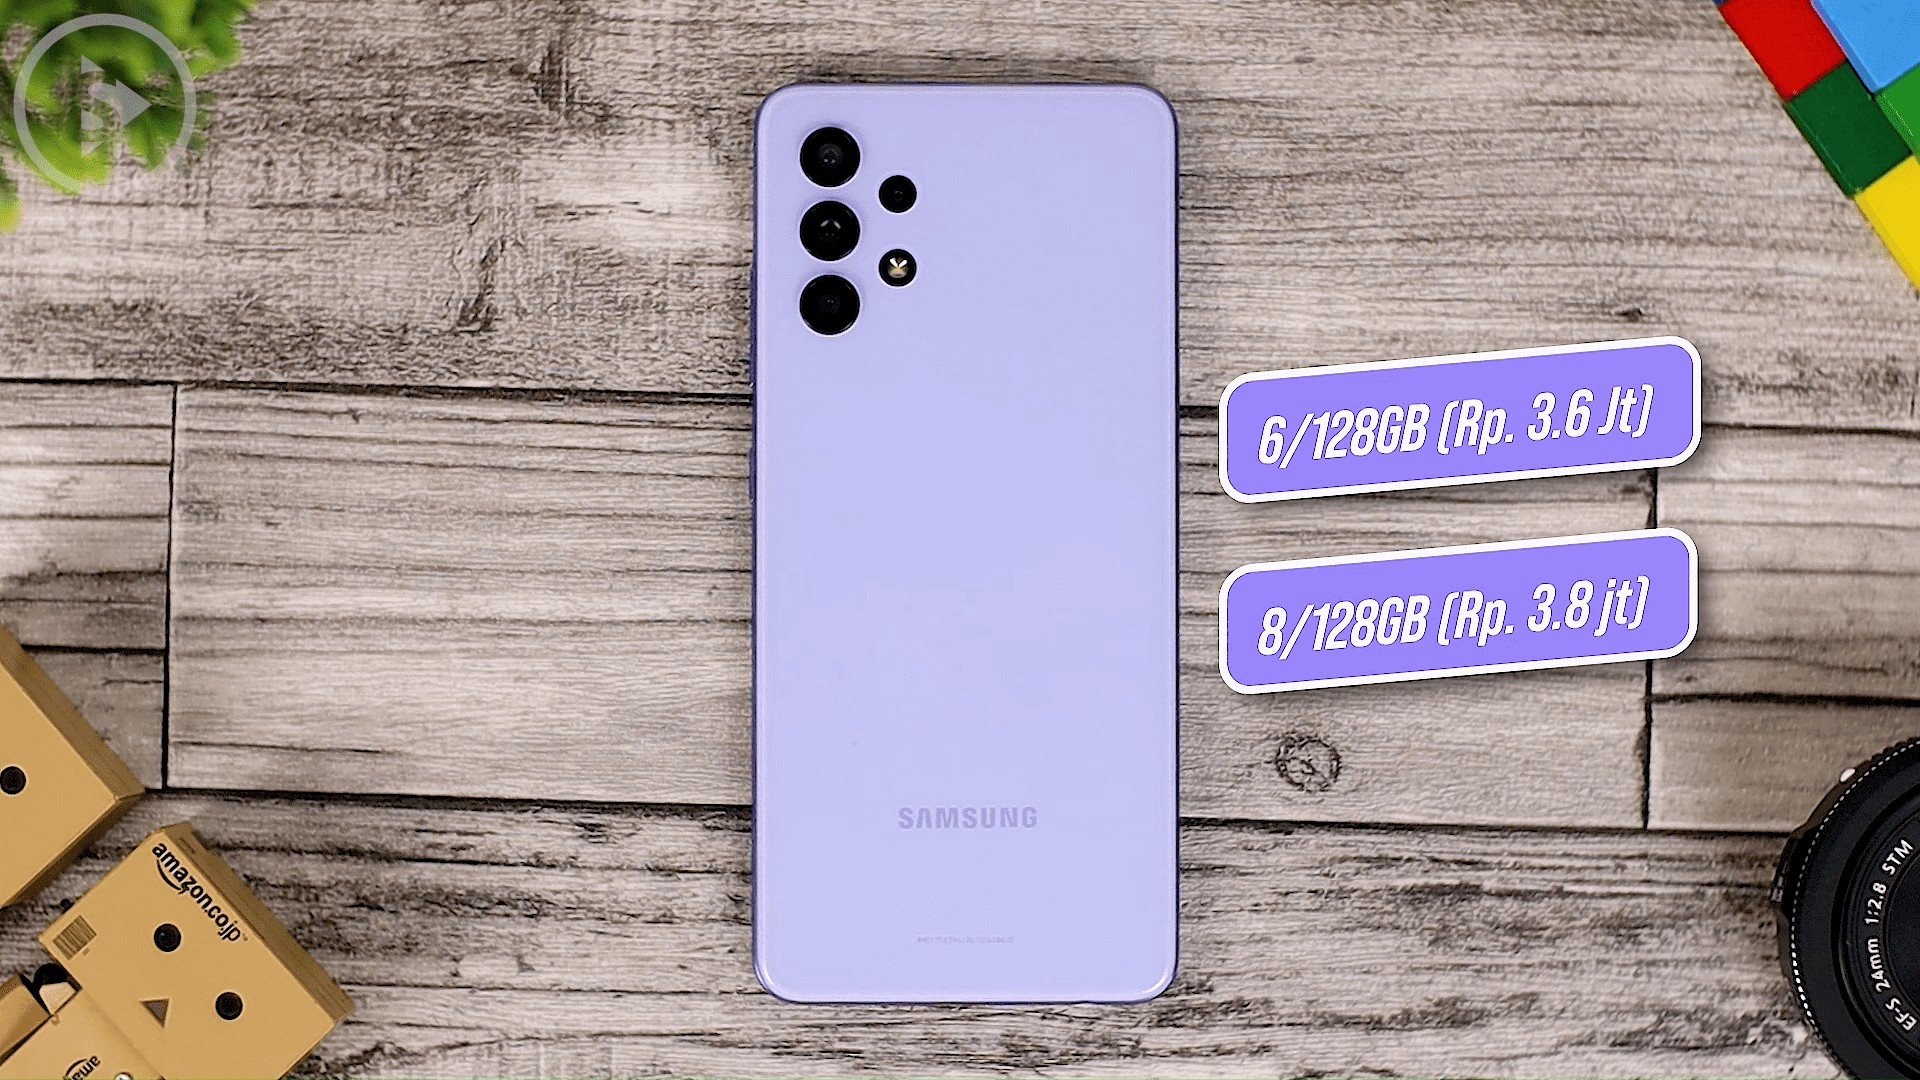 Back Case Design of Samsung Galaxy A32 - Review of Samsung Galaxy A32 Violet